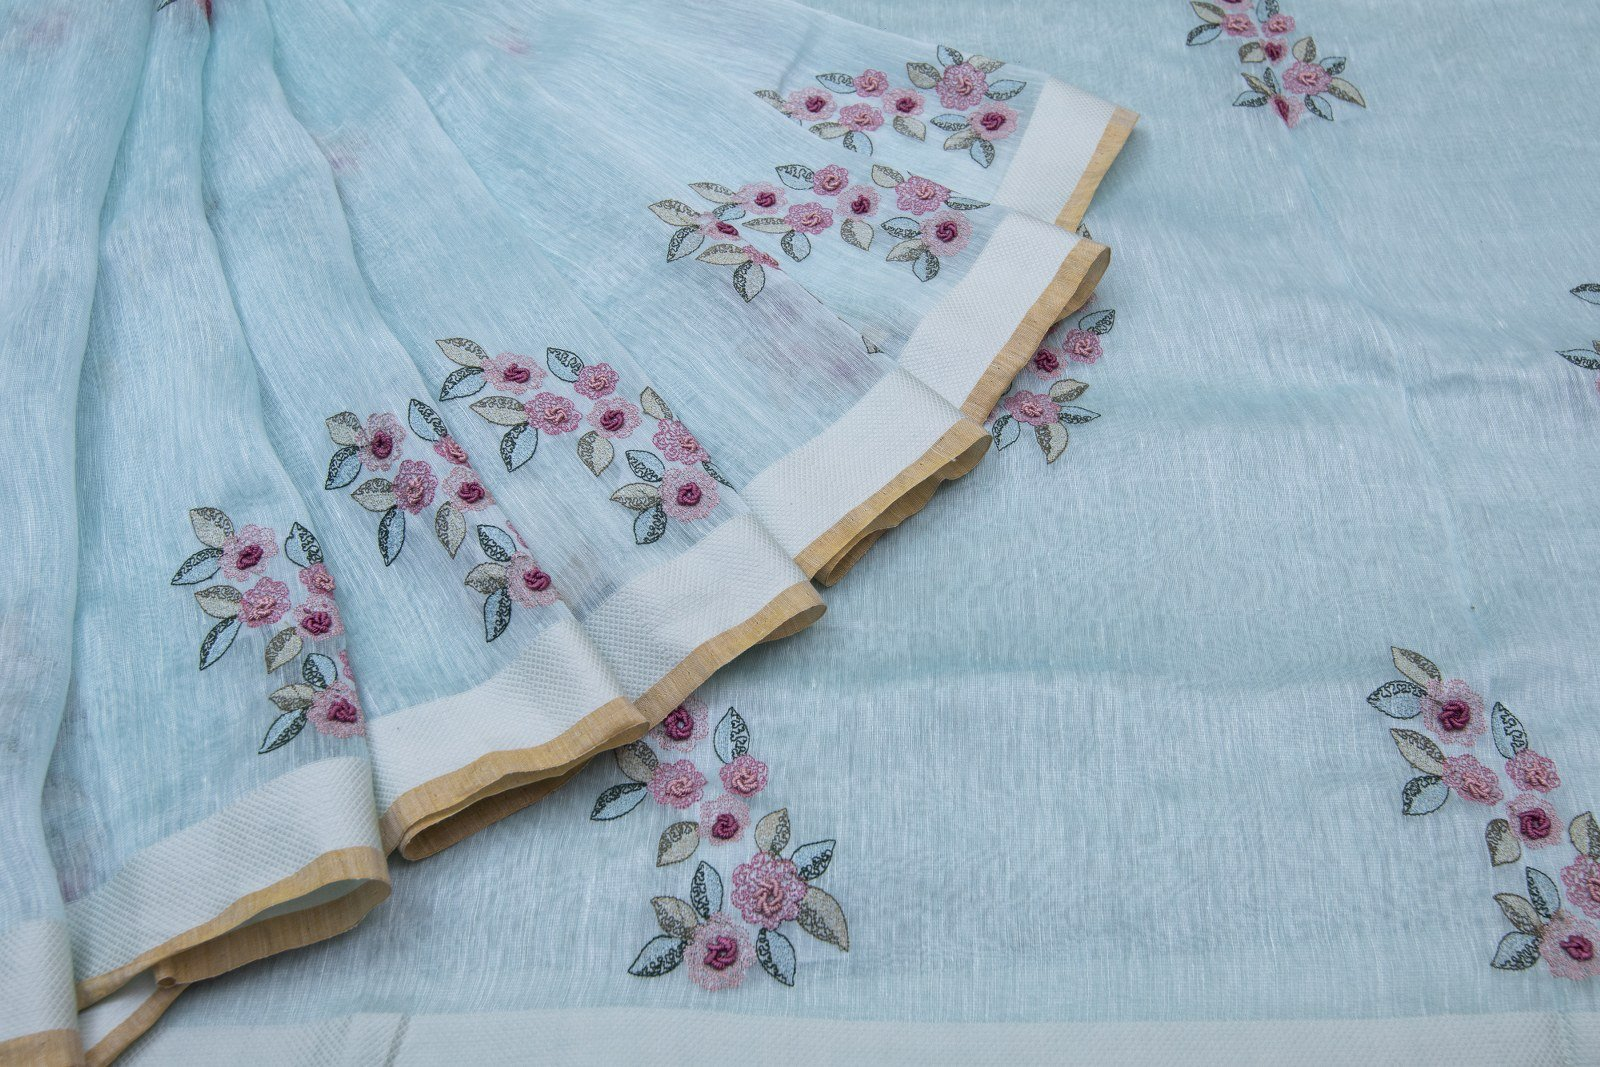 Online shopping for latest linen embroidery handloom saris @ Singhanias 2019